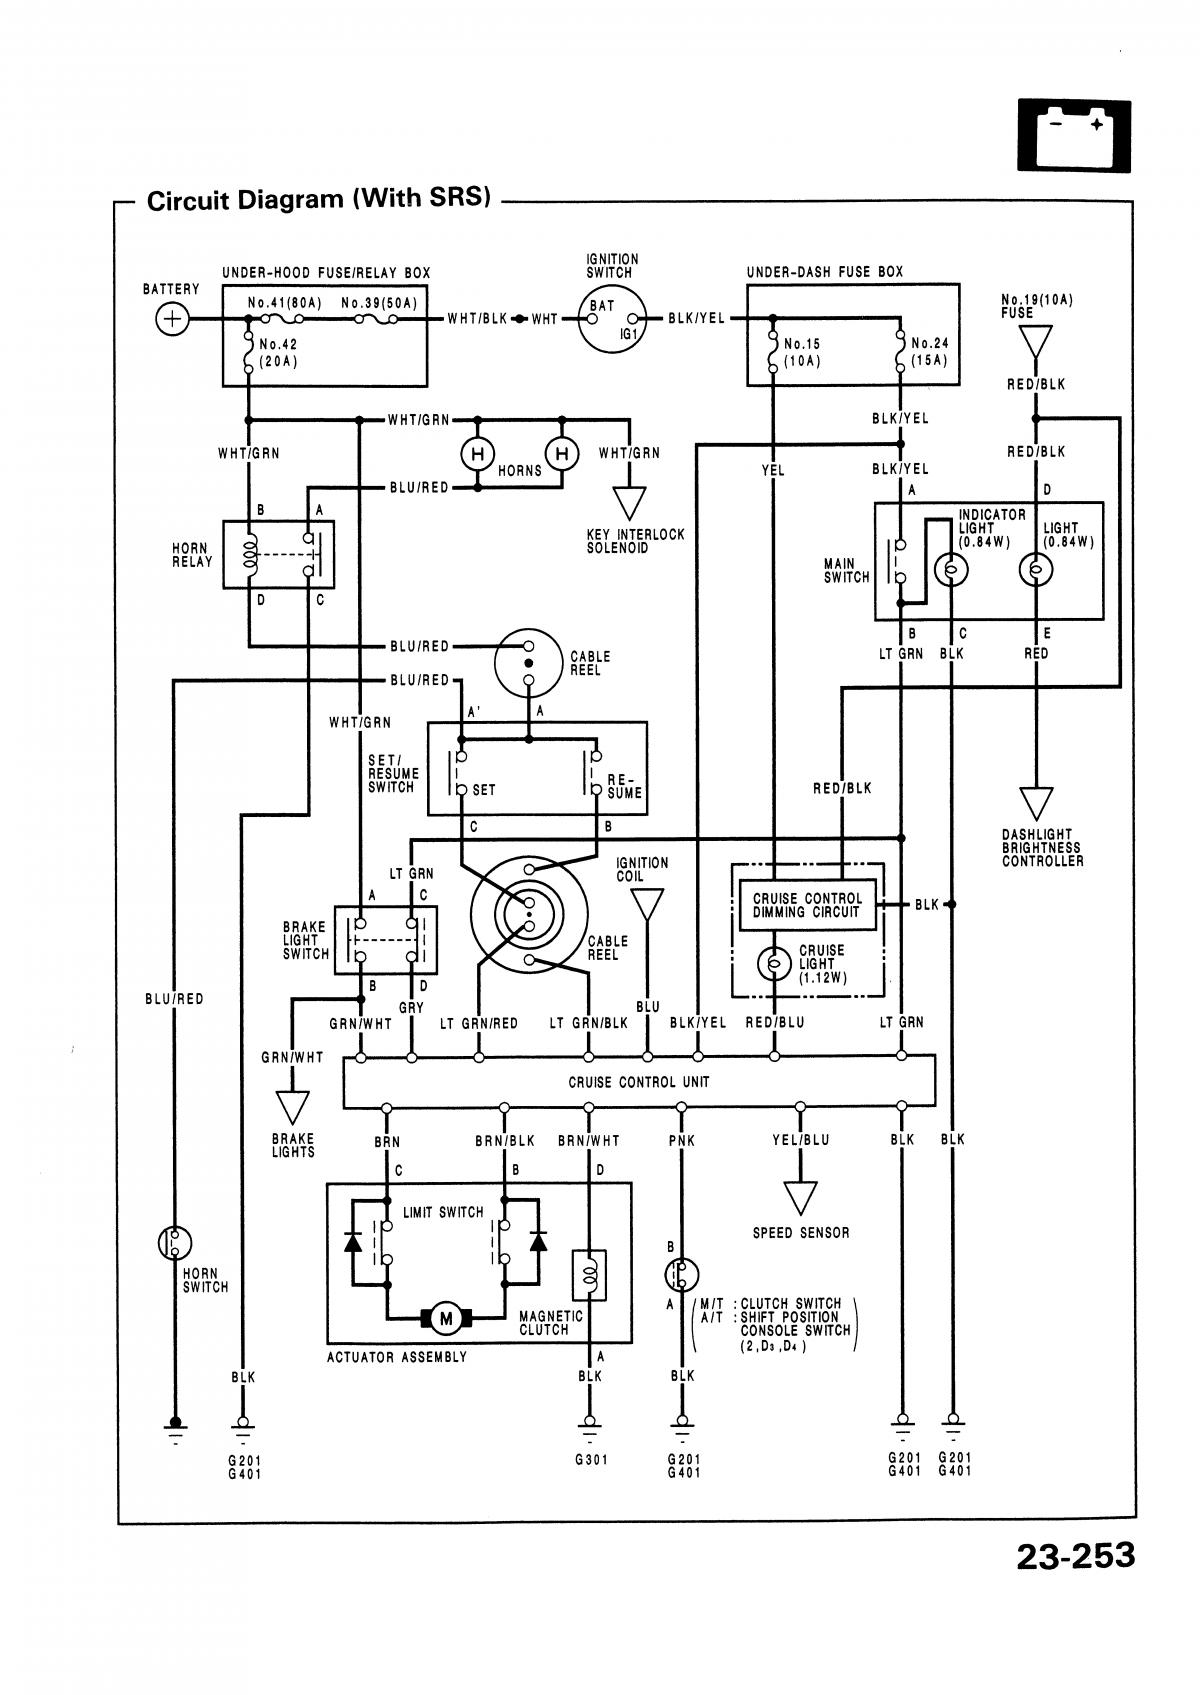 2000 honda civic vacuum diagram plot for the treasure of lemon brown vtec engine wiring source